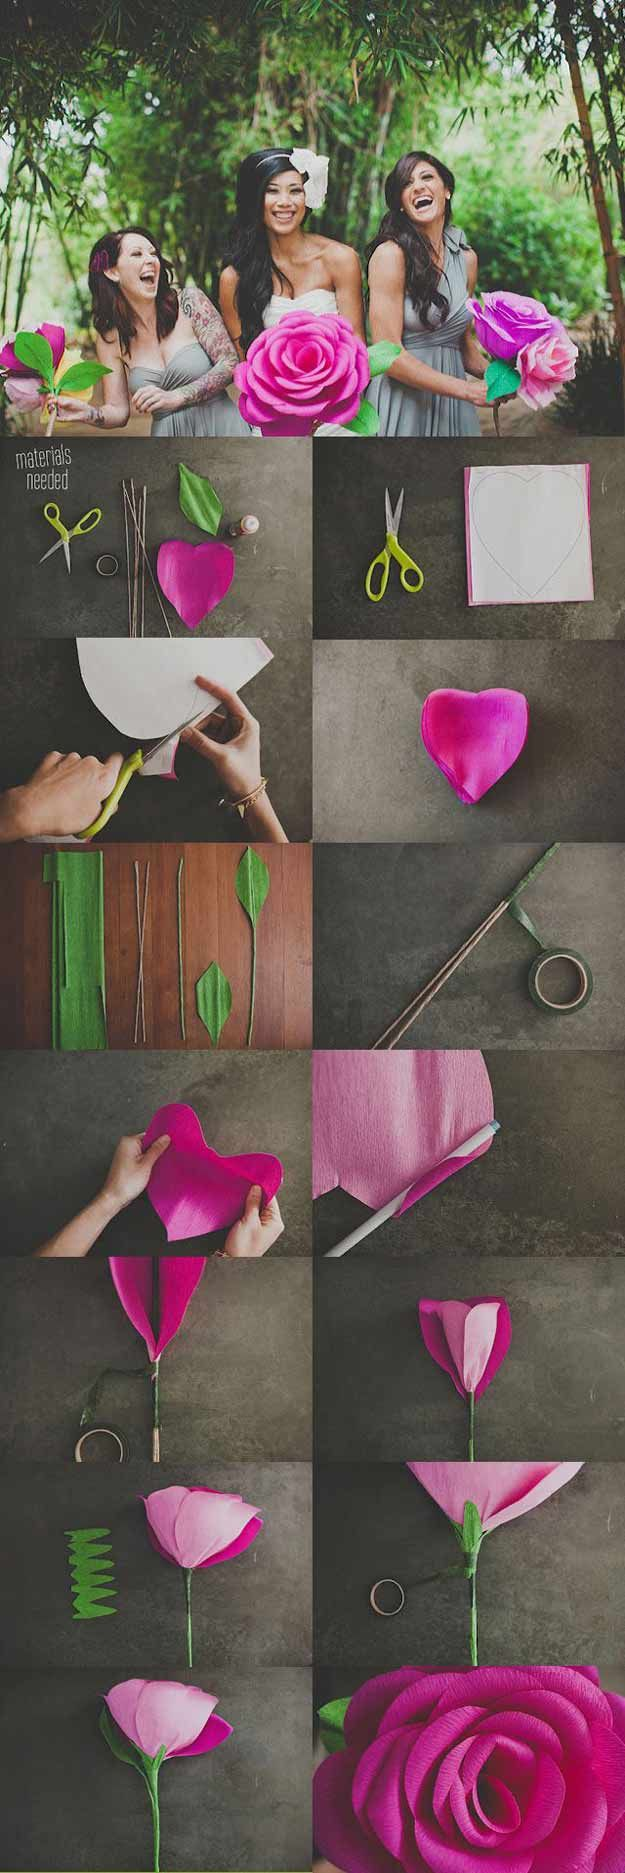 DIY Giant Paper Rose | 19 Cool DIY Photo Booth Props | How To Make Fun and Creative Photo Booth's For Birthday, Graduation, Wedding, Baby Shower, Summer Parties and more! http://diyready.com/19-cool-diy-photo-booth-props/